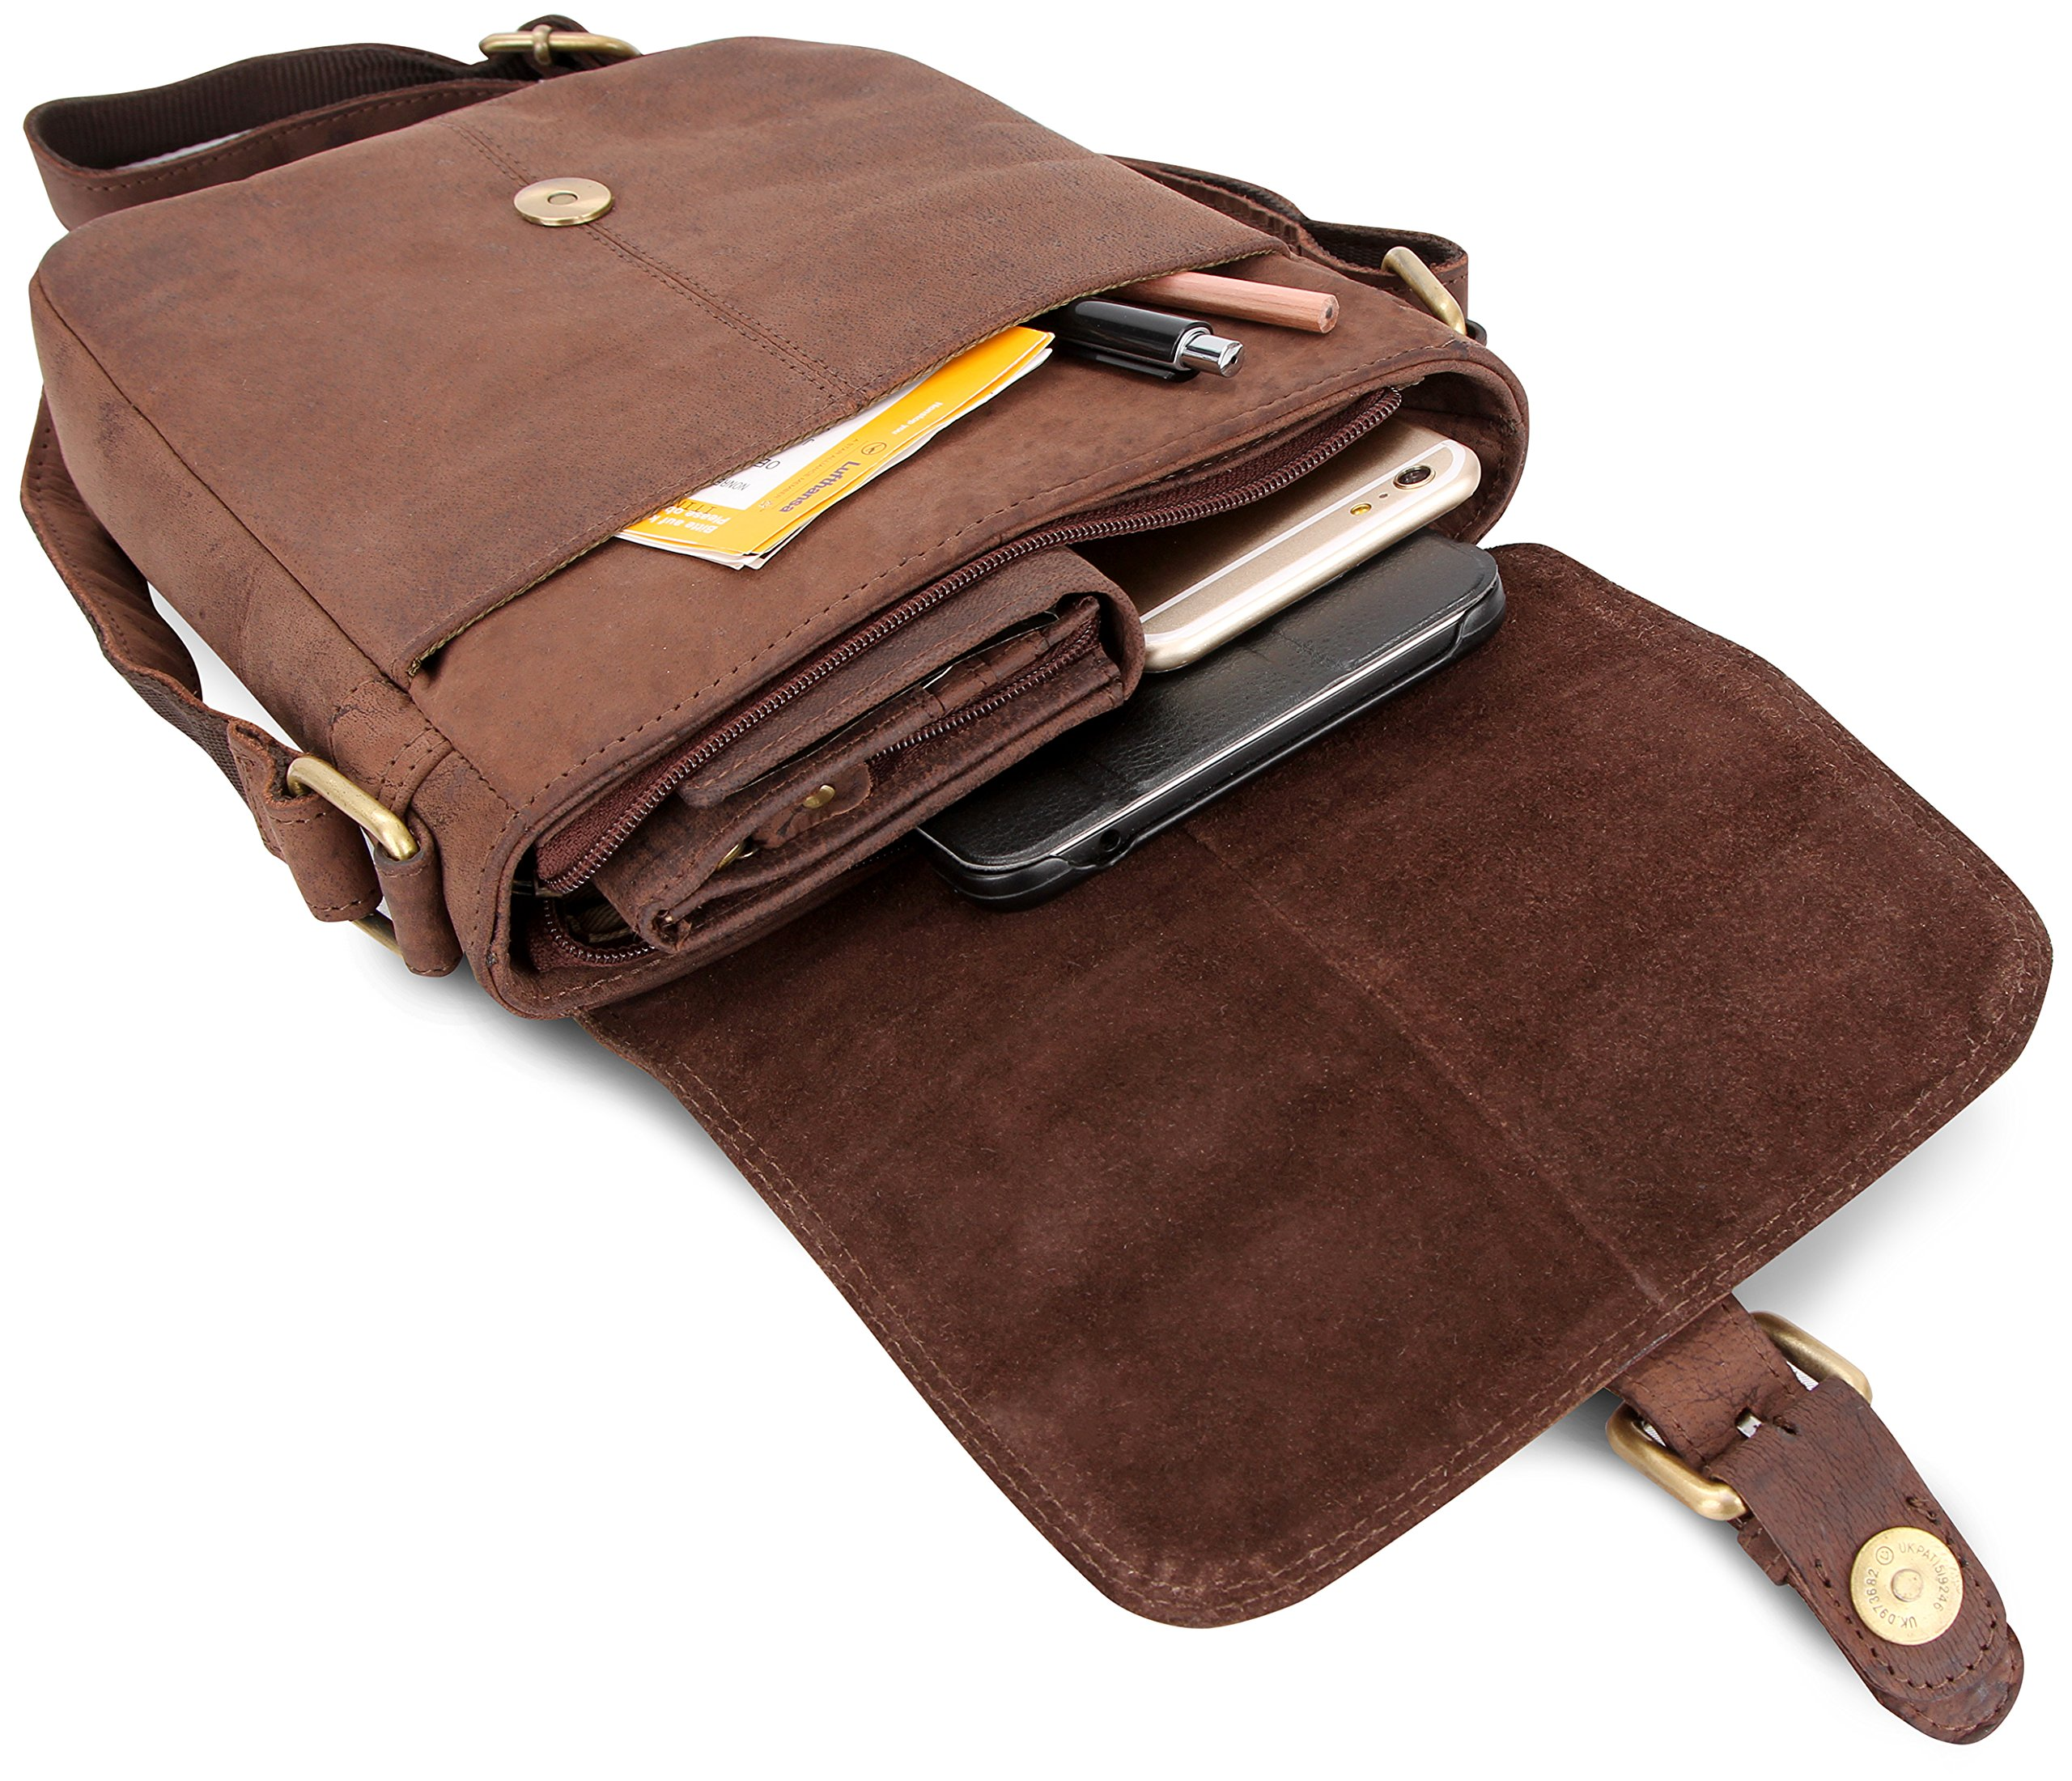 LEABAGS Weston genuine buffalo leather city bag in vintage style - Nutmeg by LEABAGS (Image #8)